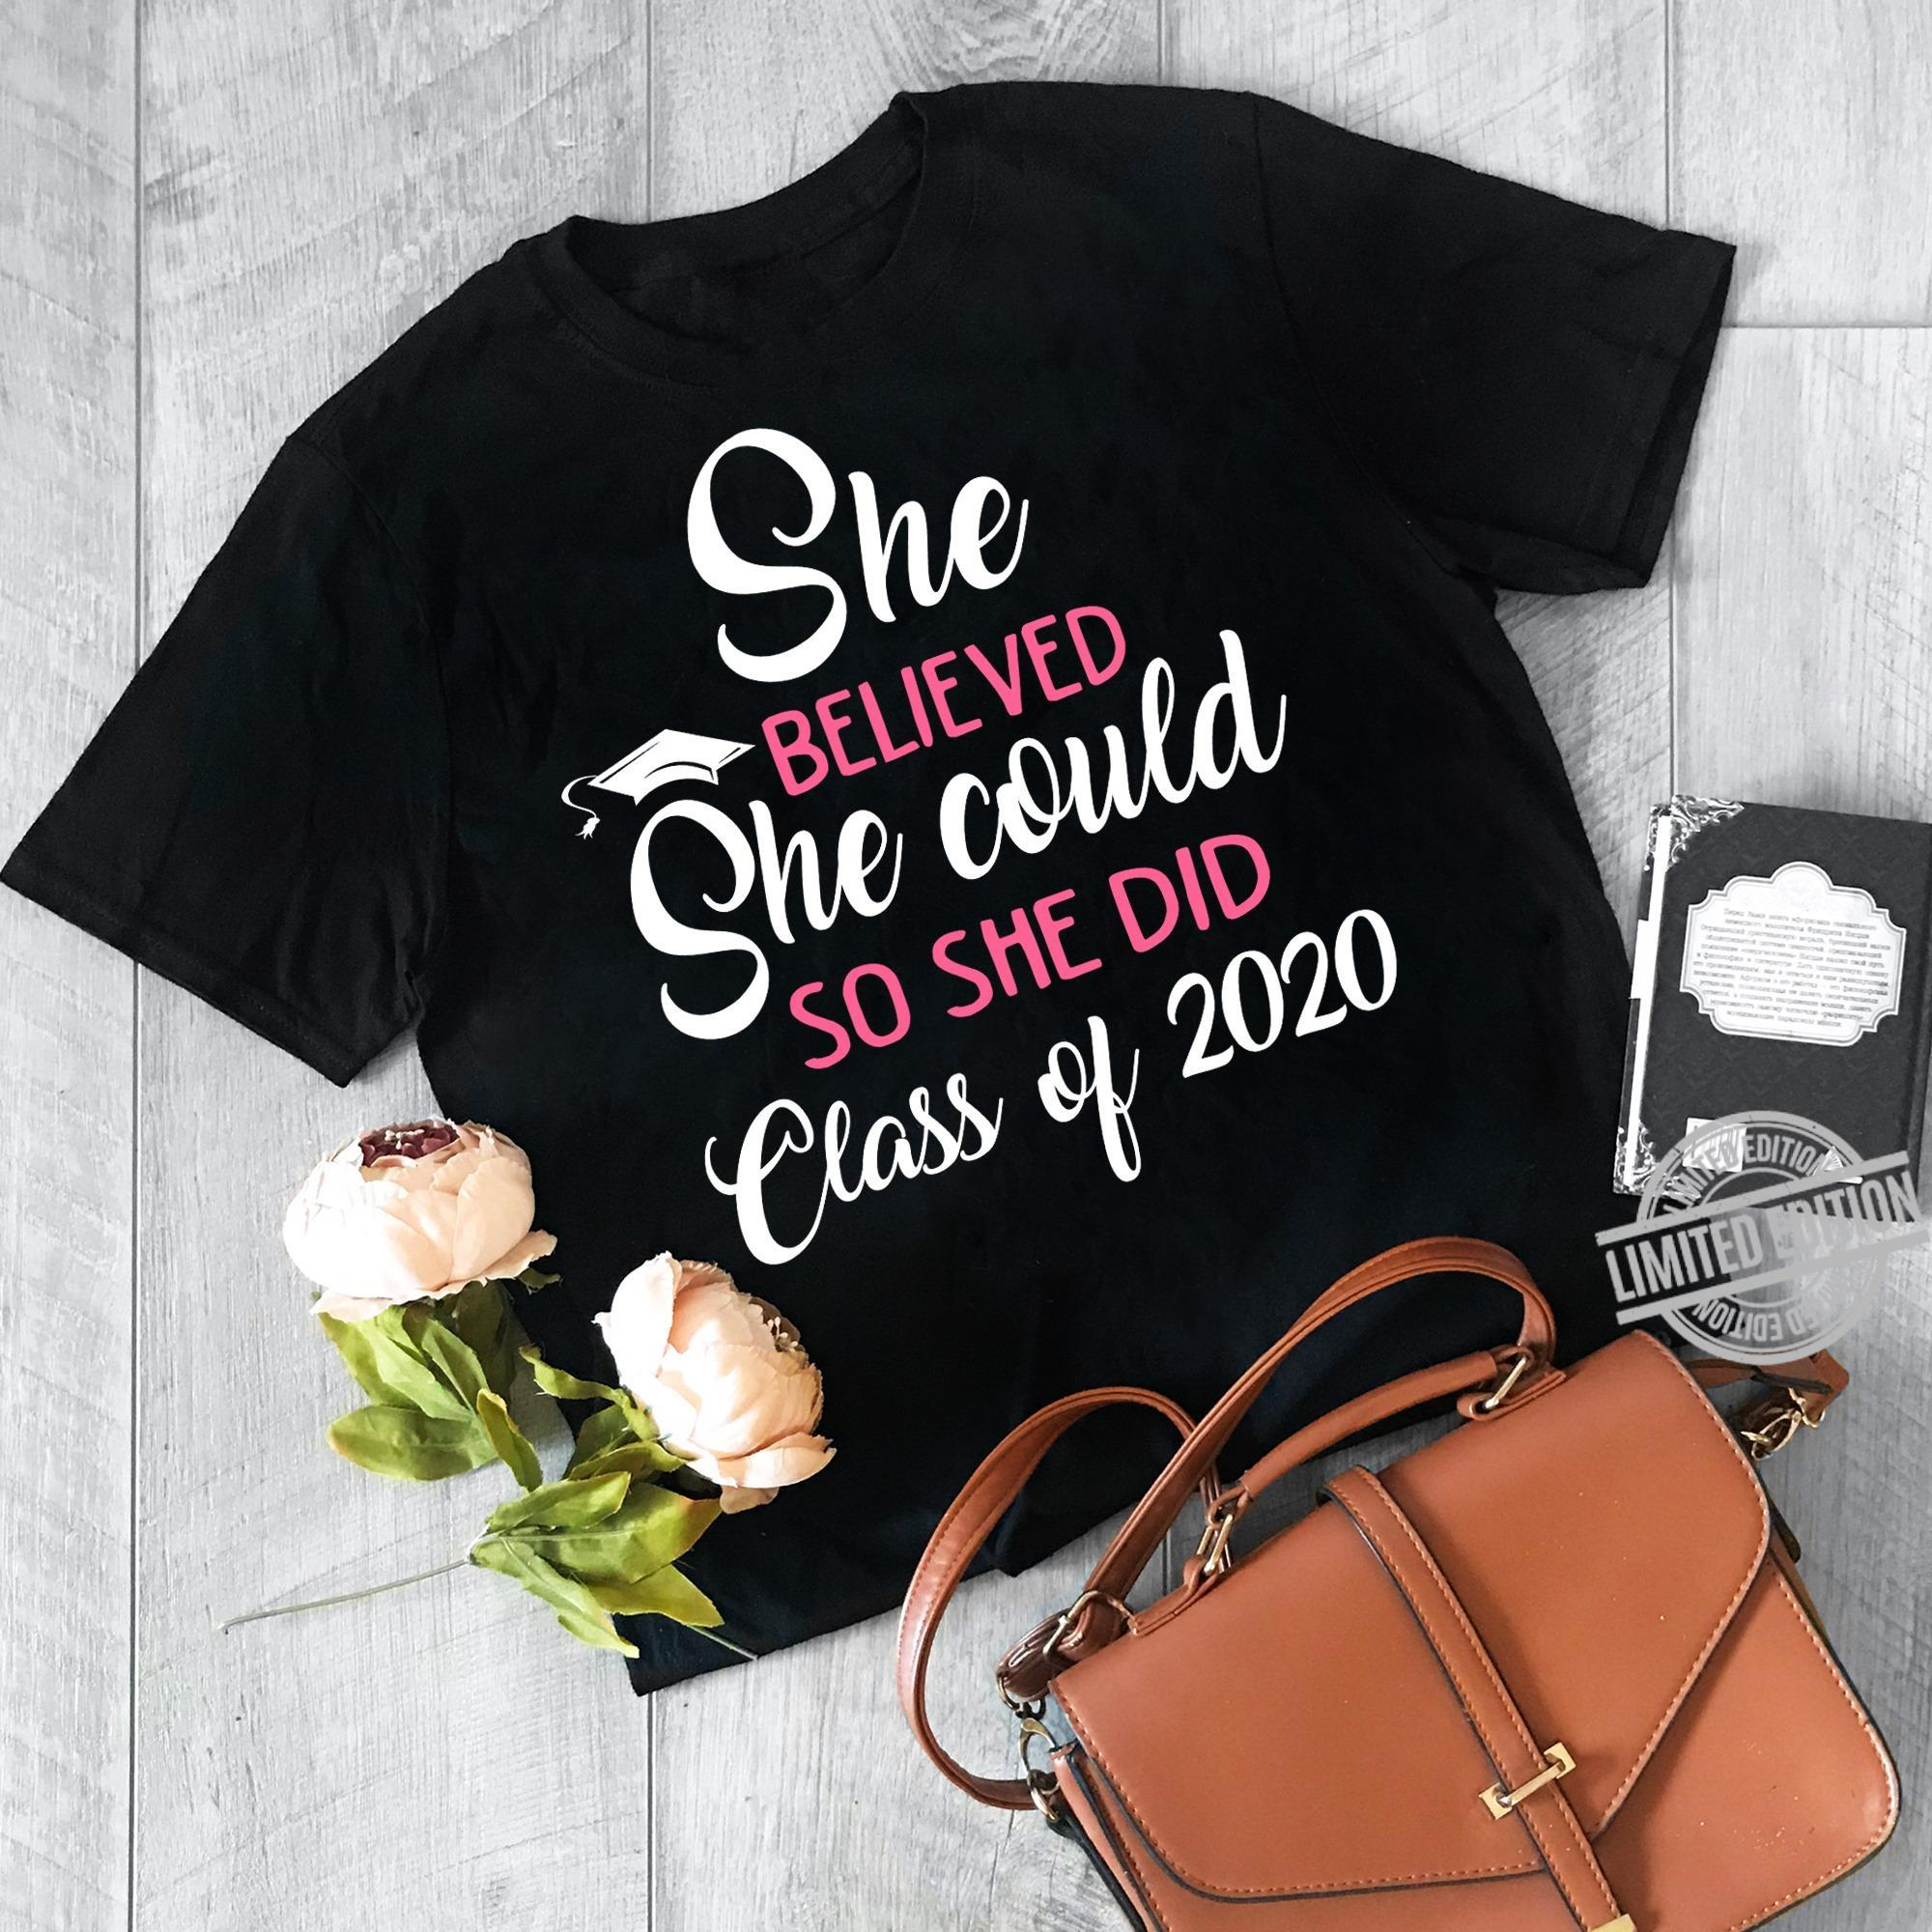 She Believed She Could So She Did Class Of 2020 Shirt